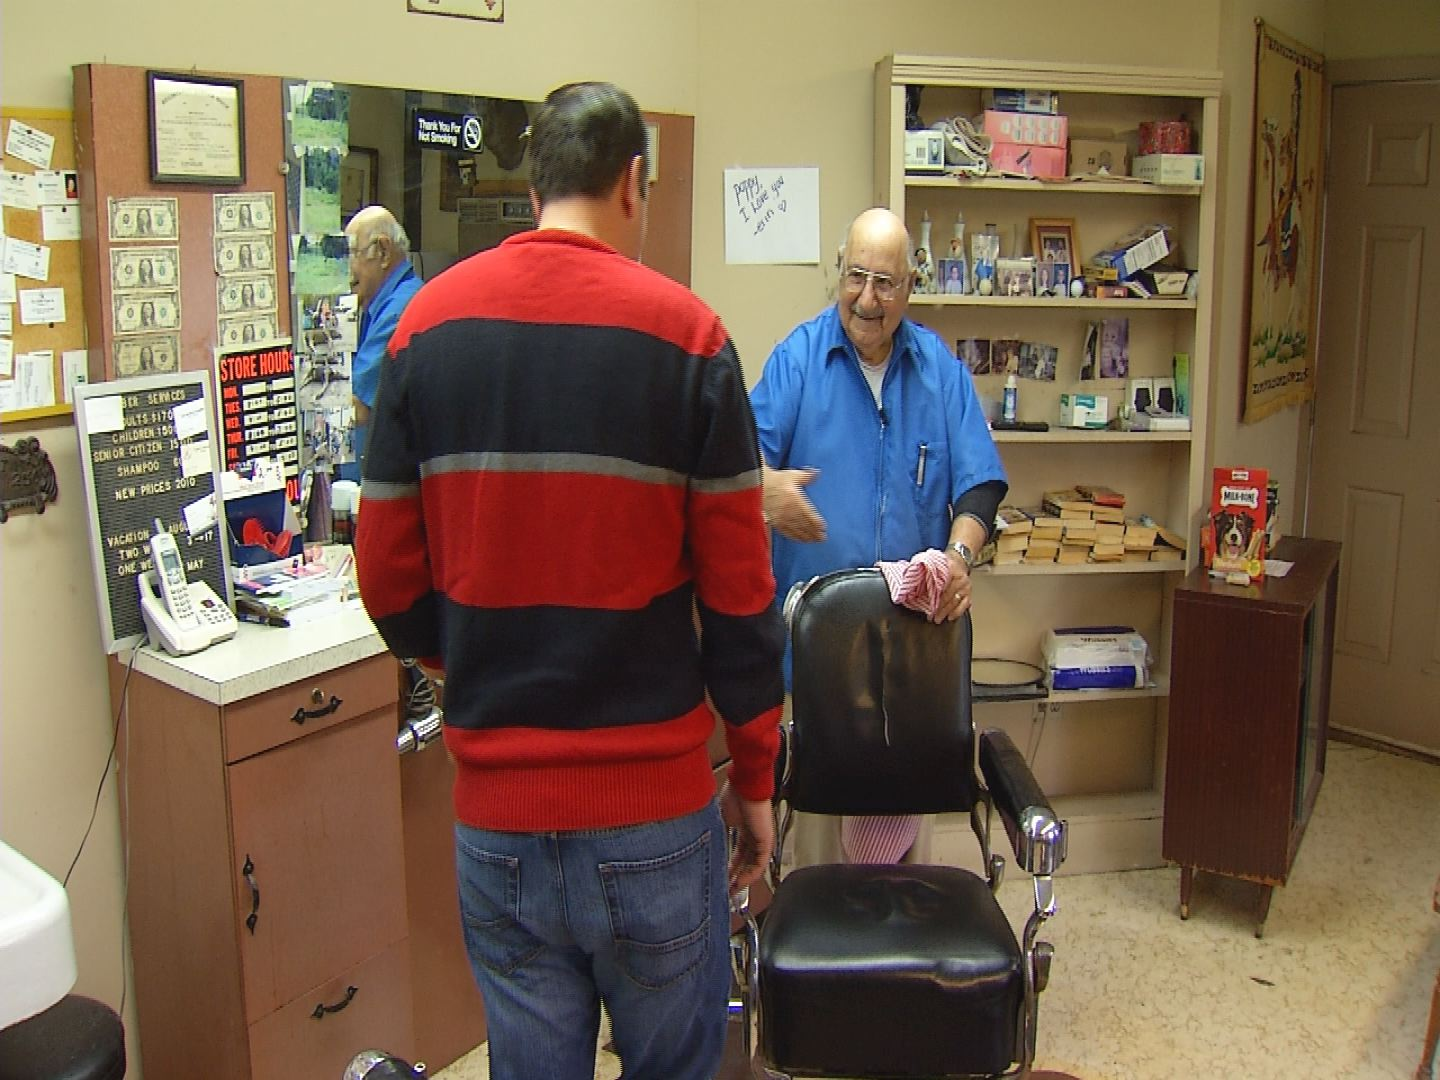 There's no telling how many thousands of haircuts Jimmy Cerrigione has given in his Windsor barber shop since 1959. But on Wednesday, he gave his very last haircut just after noon.